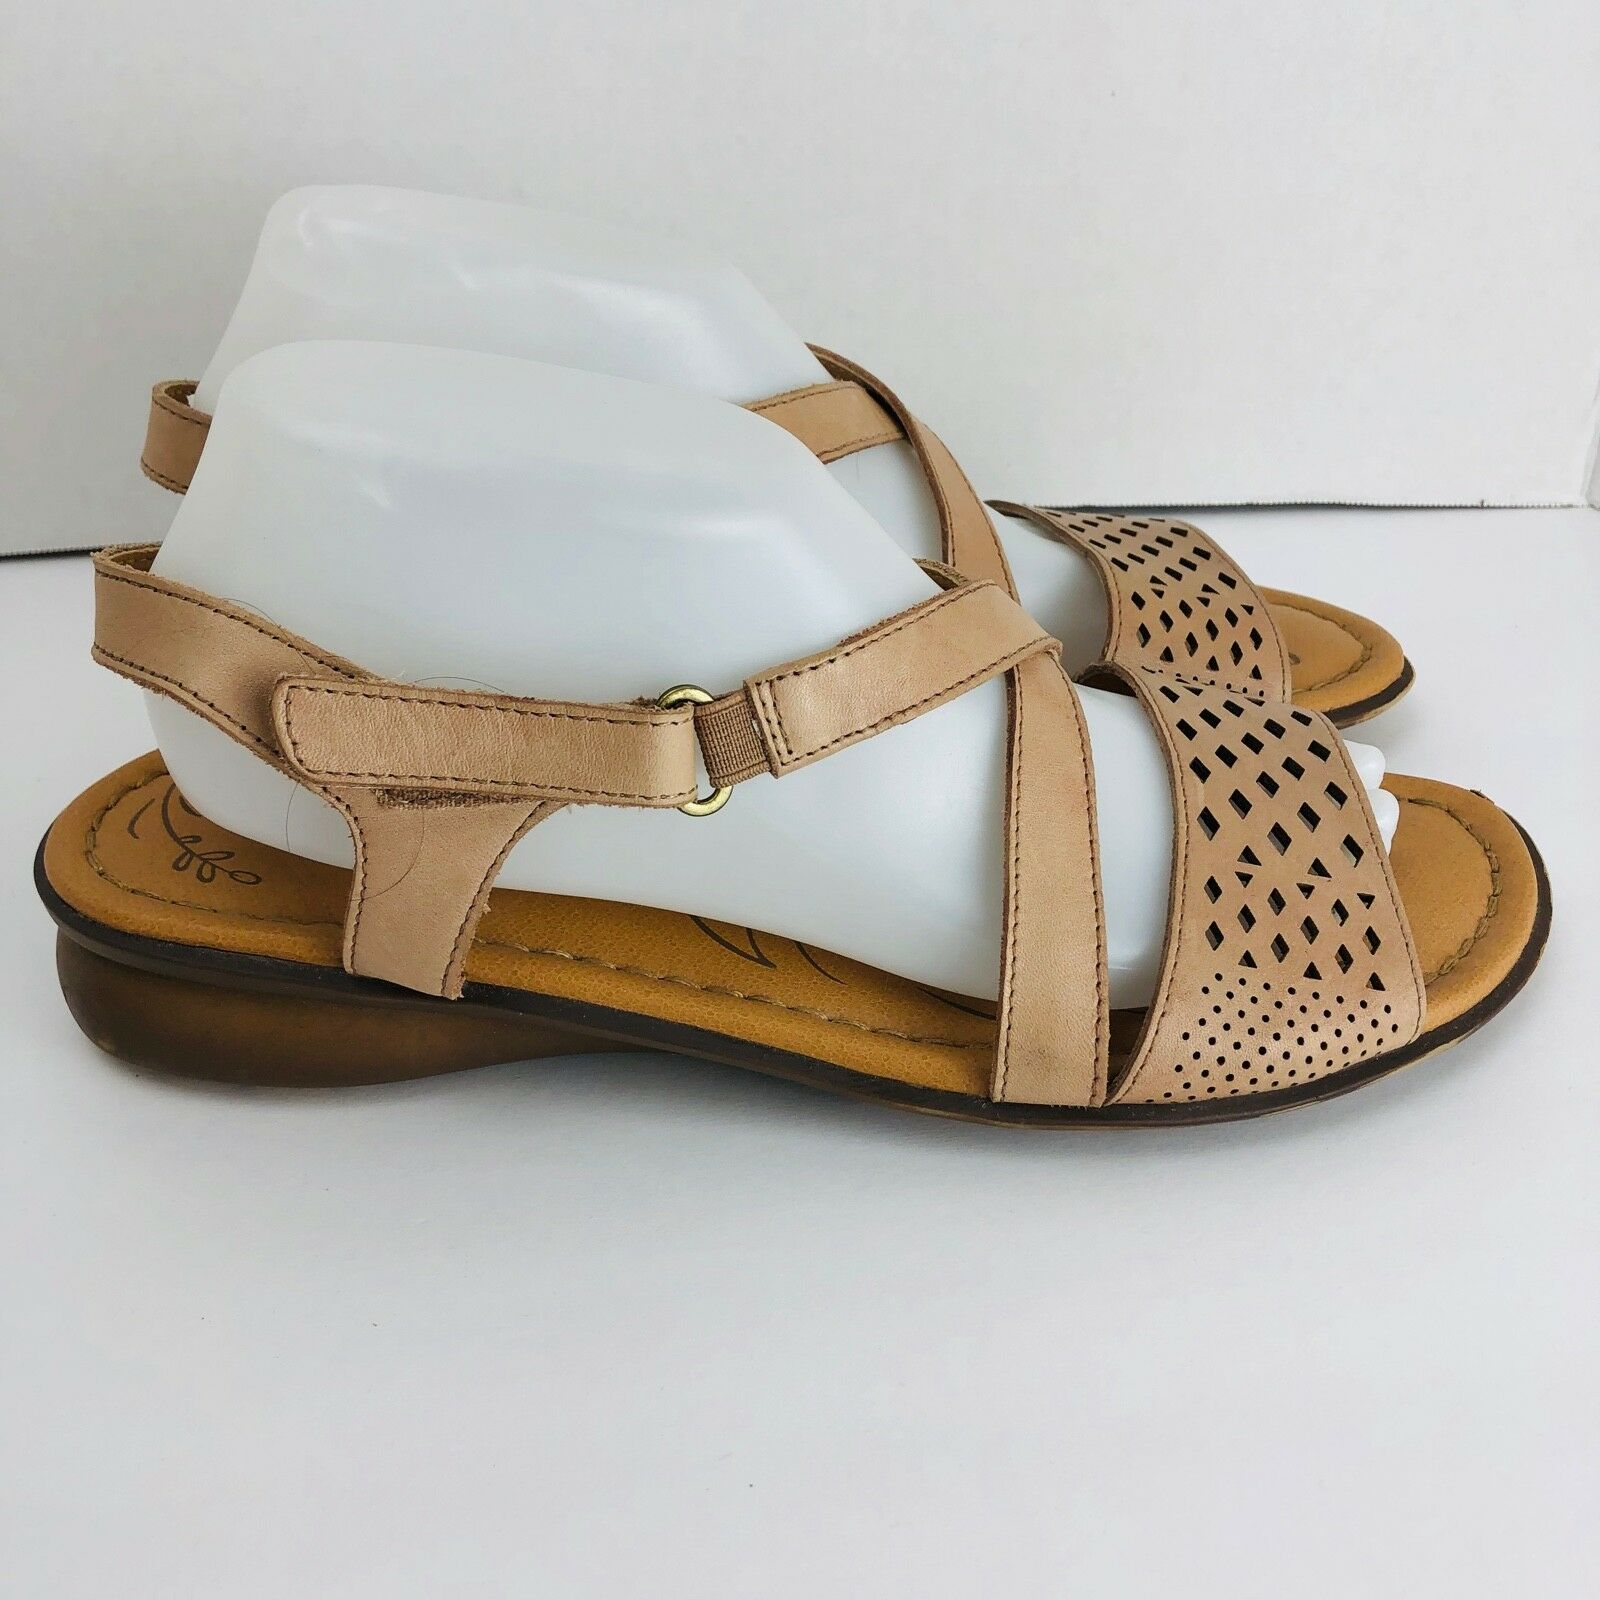 d06a3a596334 Naturalizer Janessa Gingersnap Beige Leather Strappy Sandals Size 10 N Shoe  for sale online